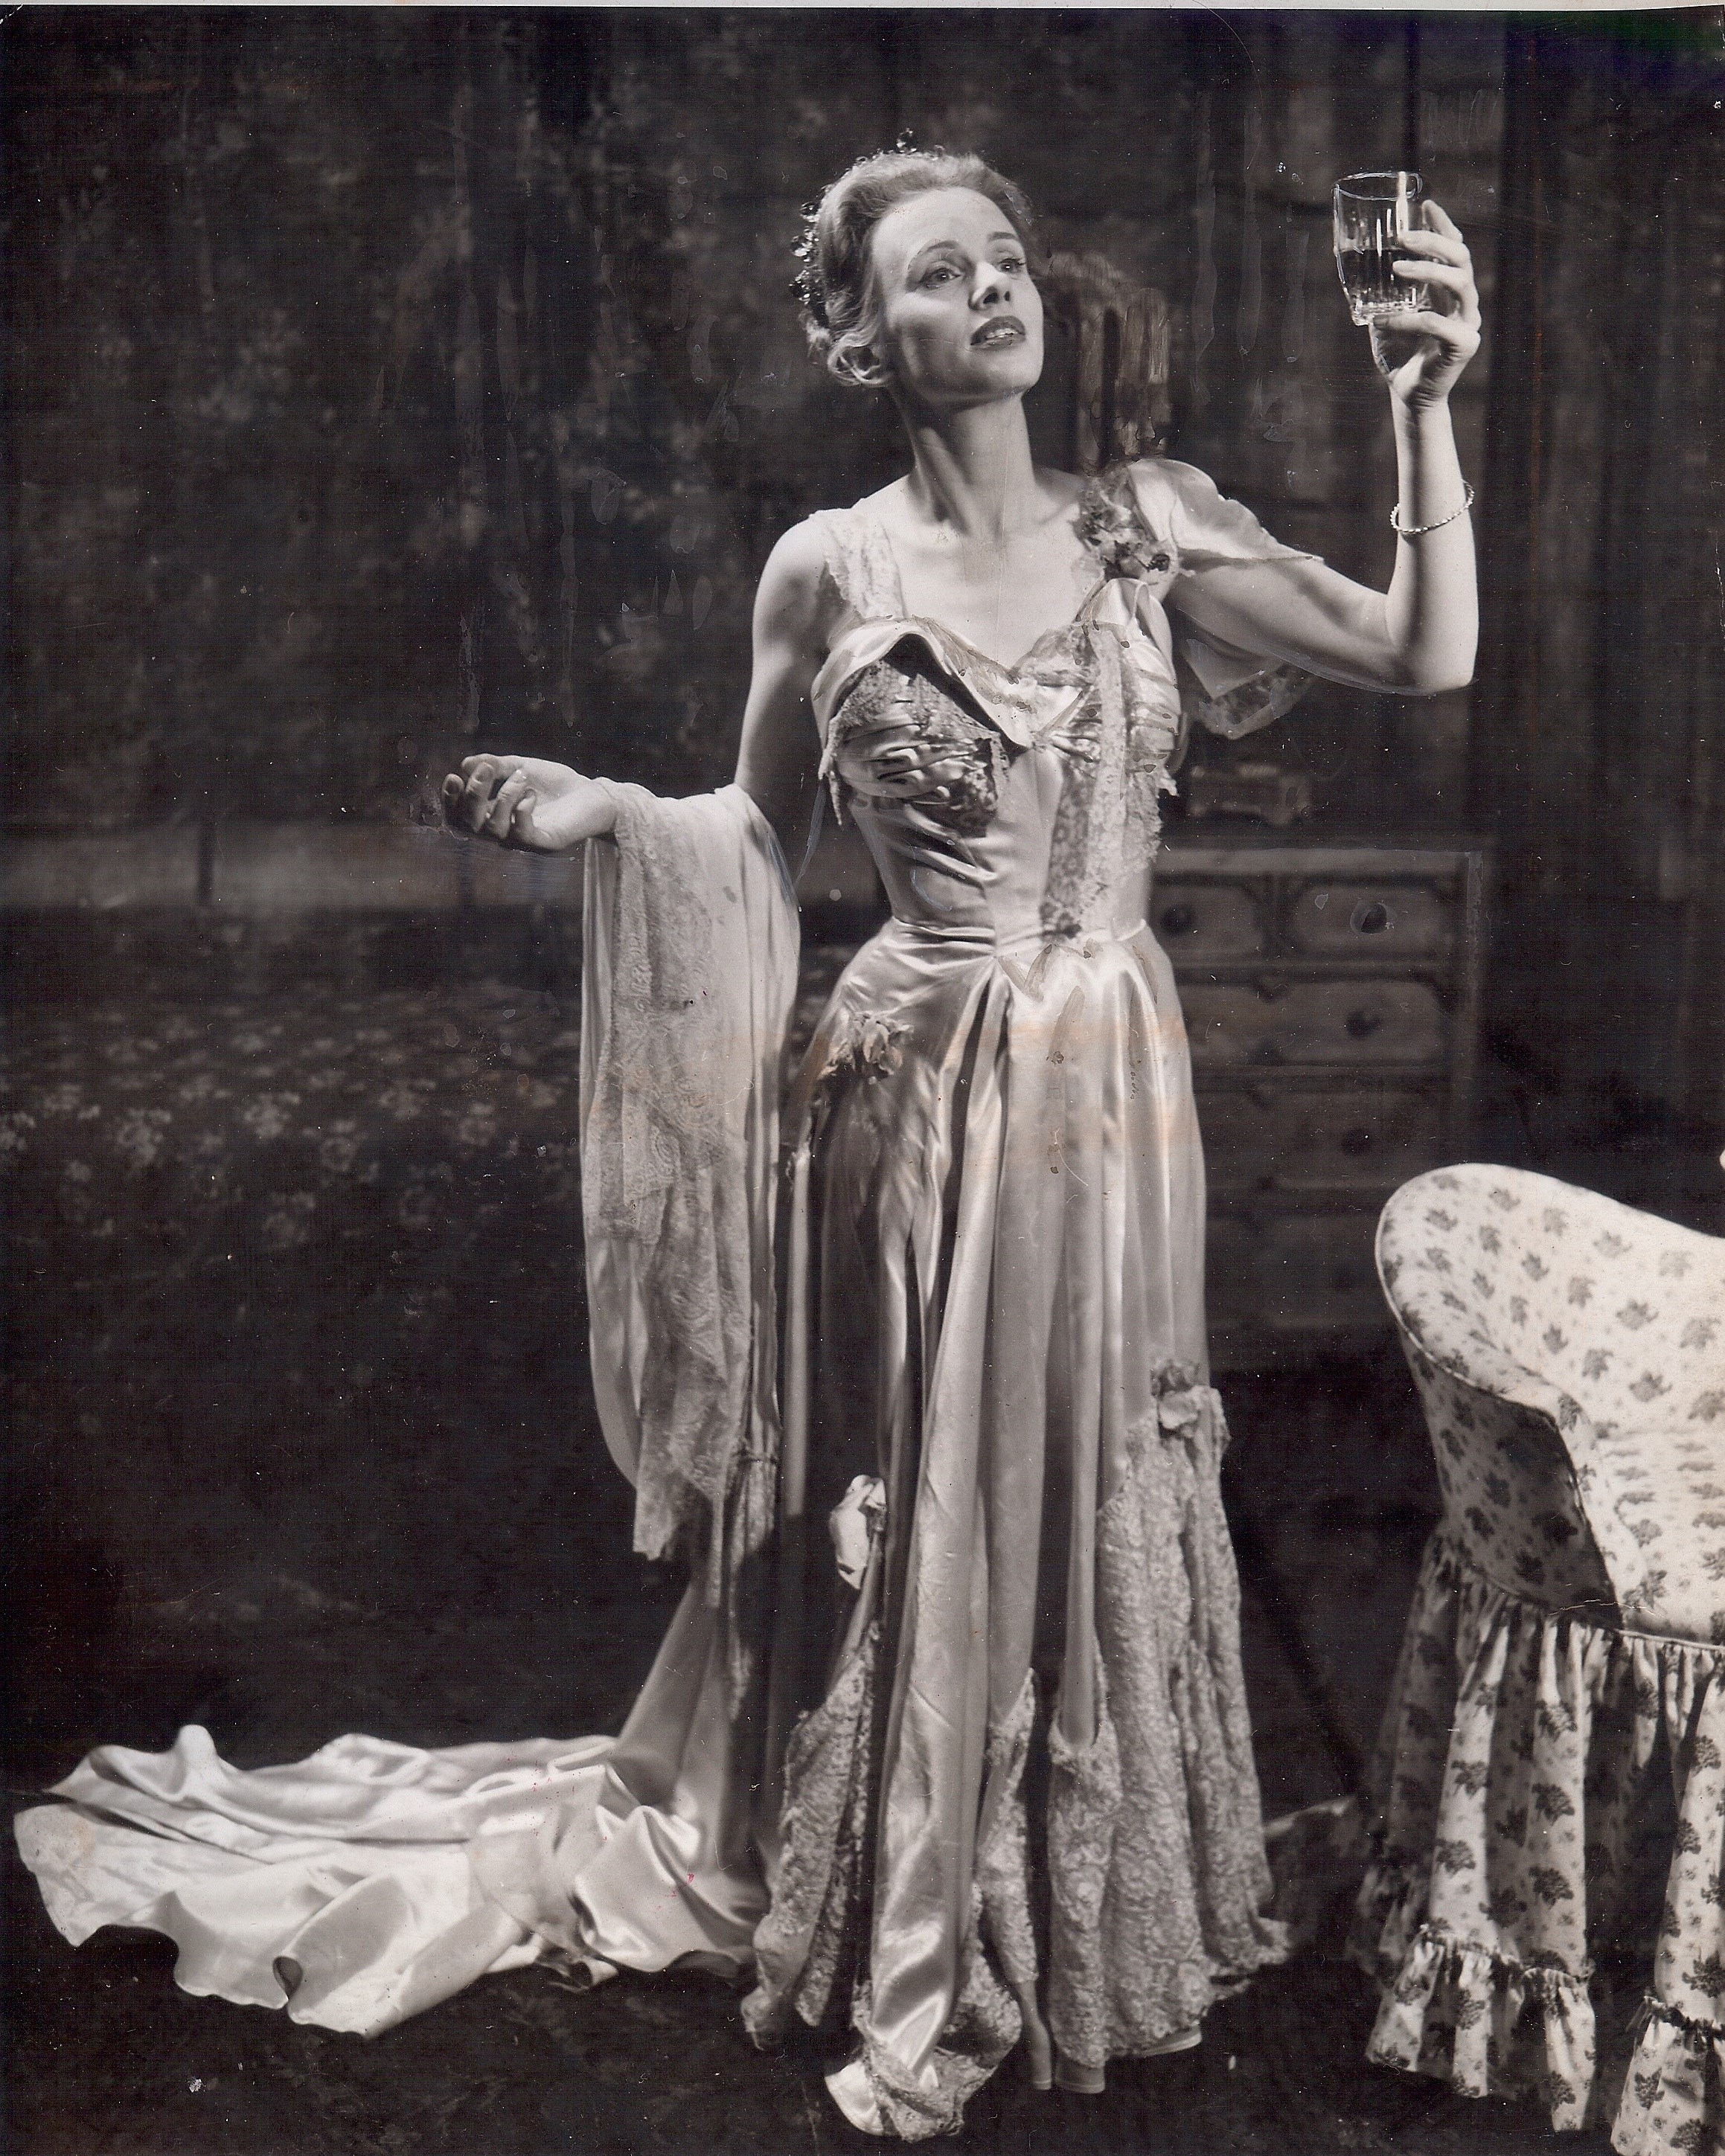 Analyze Blanche Dubois in A Streetcar Named Desire by Tennessee Williams.